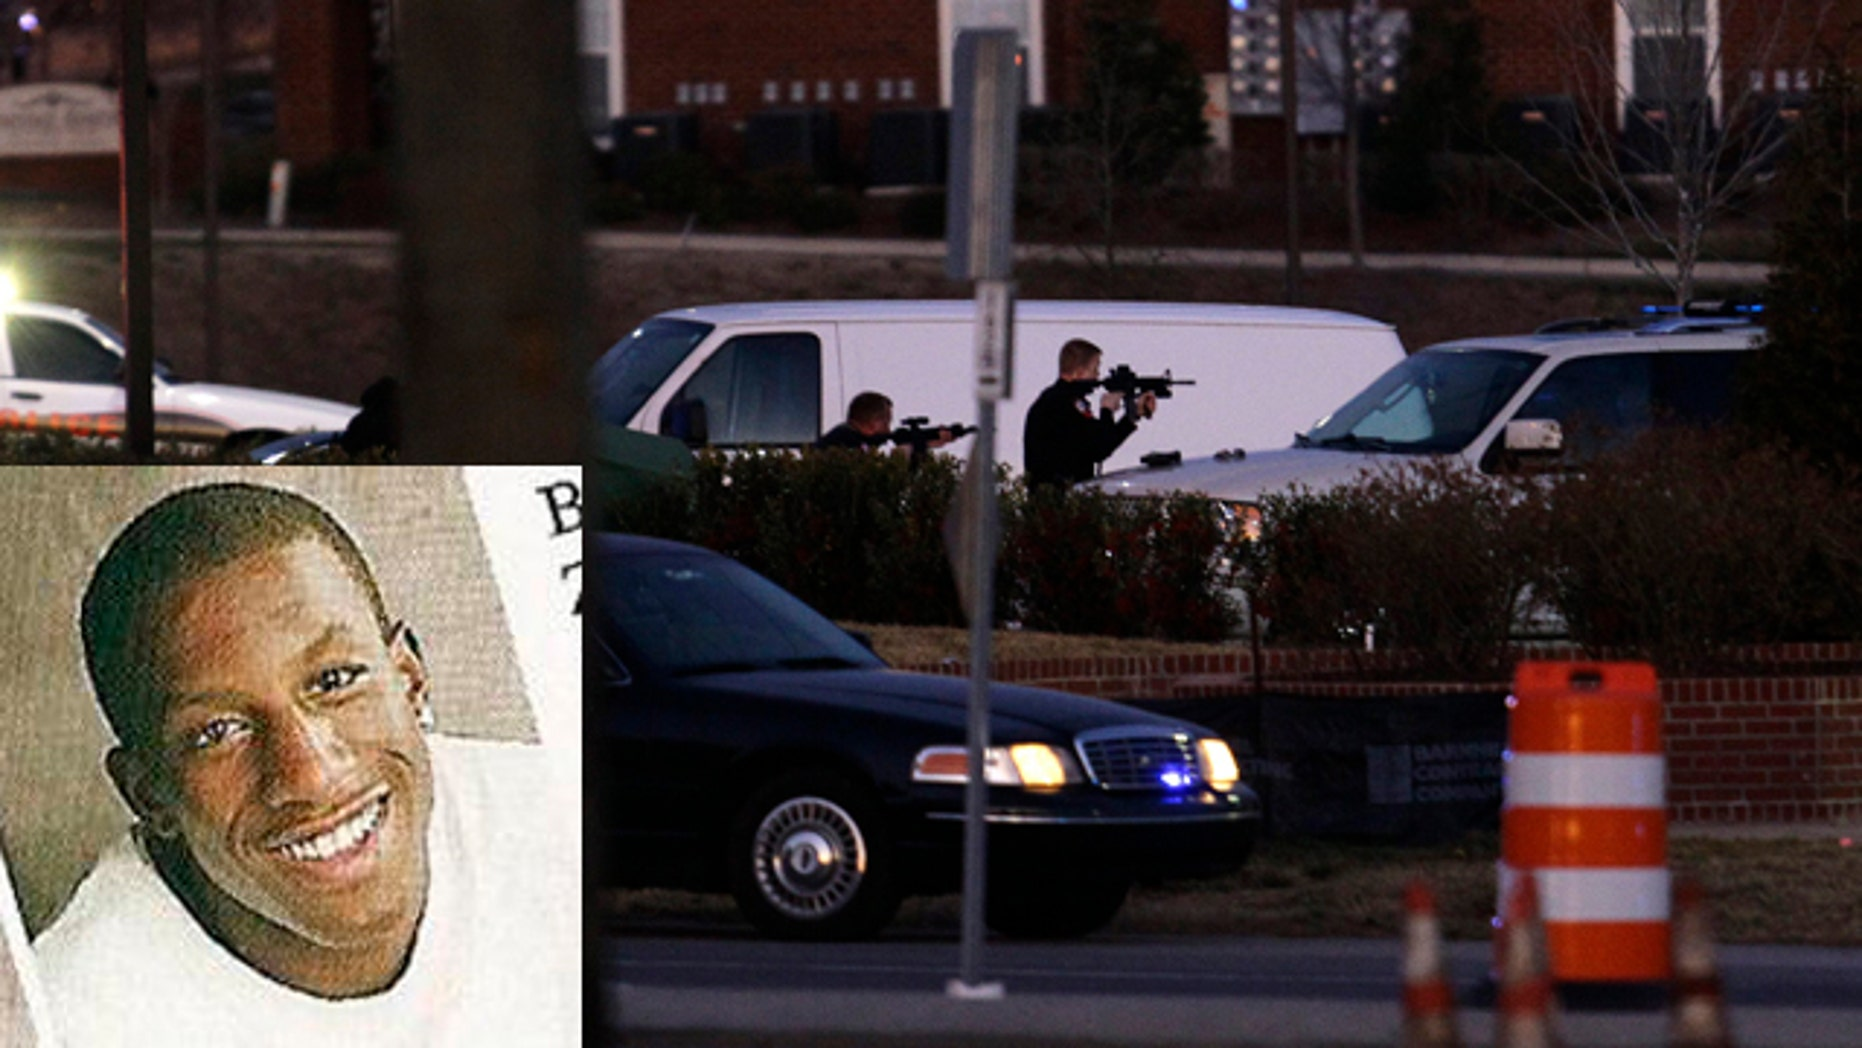 Devon Mitchell was shot after he walked out of the Wachovia bank with a gun pressed to the head of a female hostage